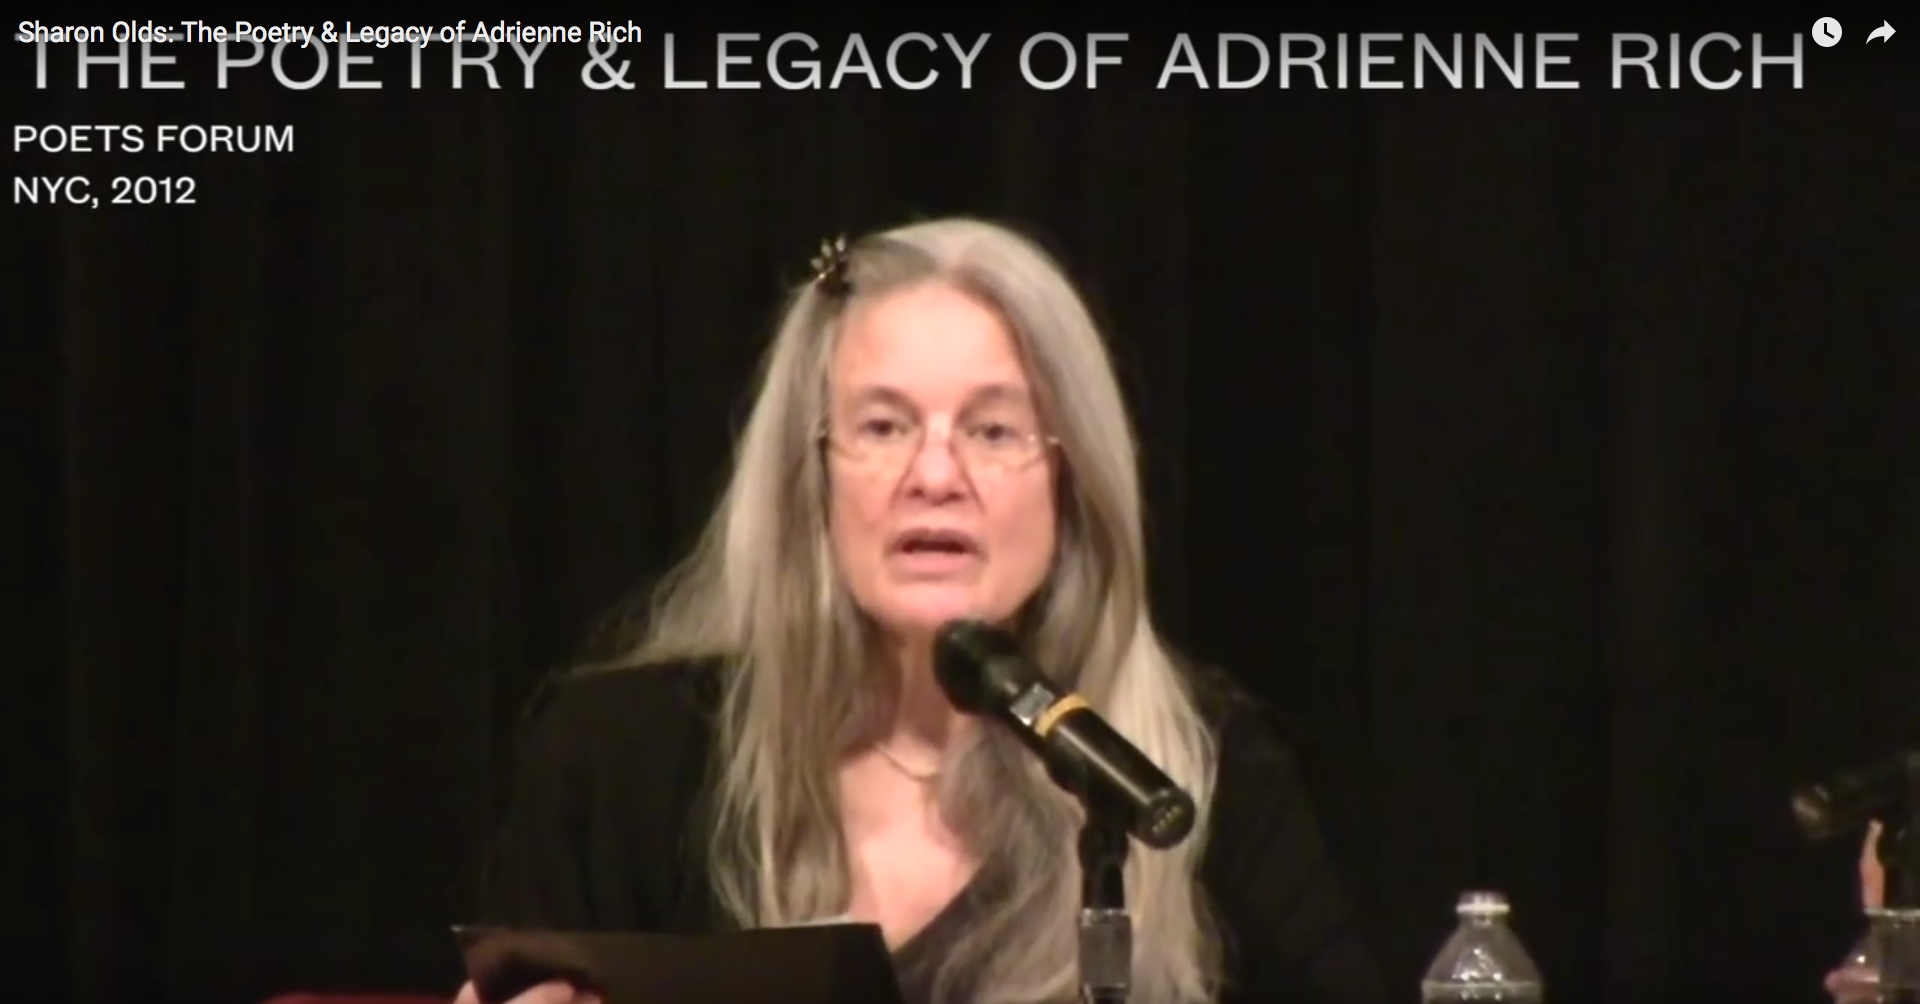 Sharon Olds on Adrienne Rich